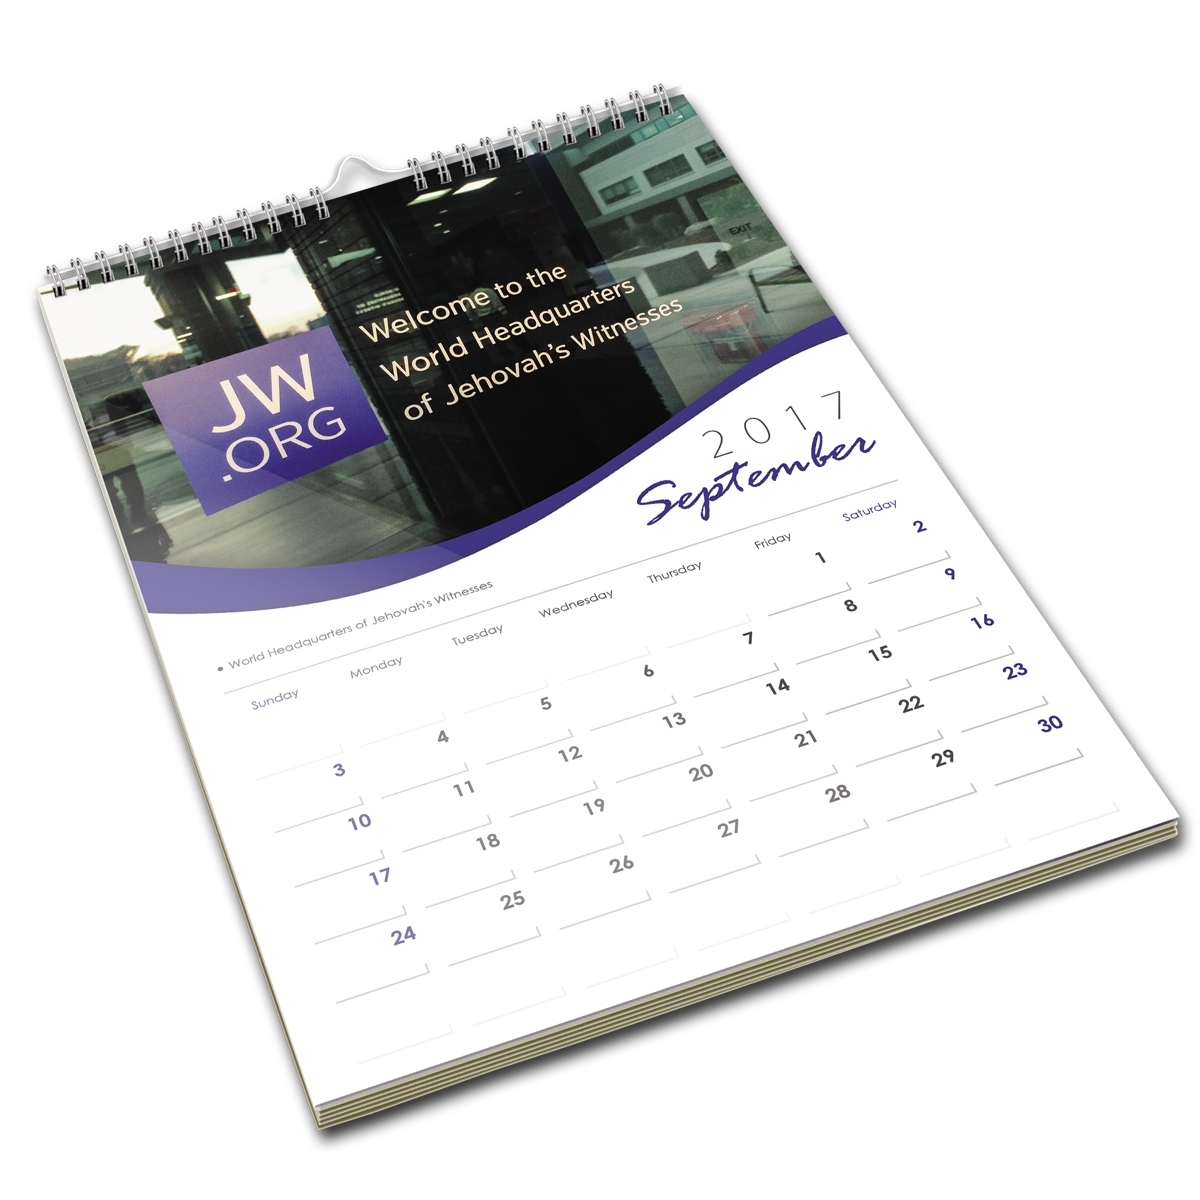 16 month jw wall calendar featuring warwick bethel september 2017 december 2018